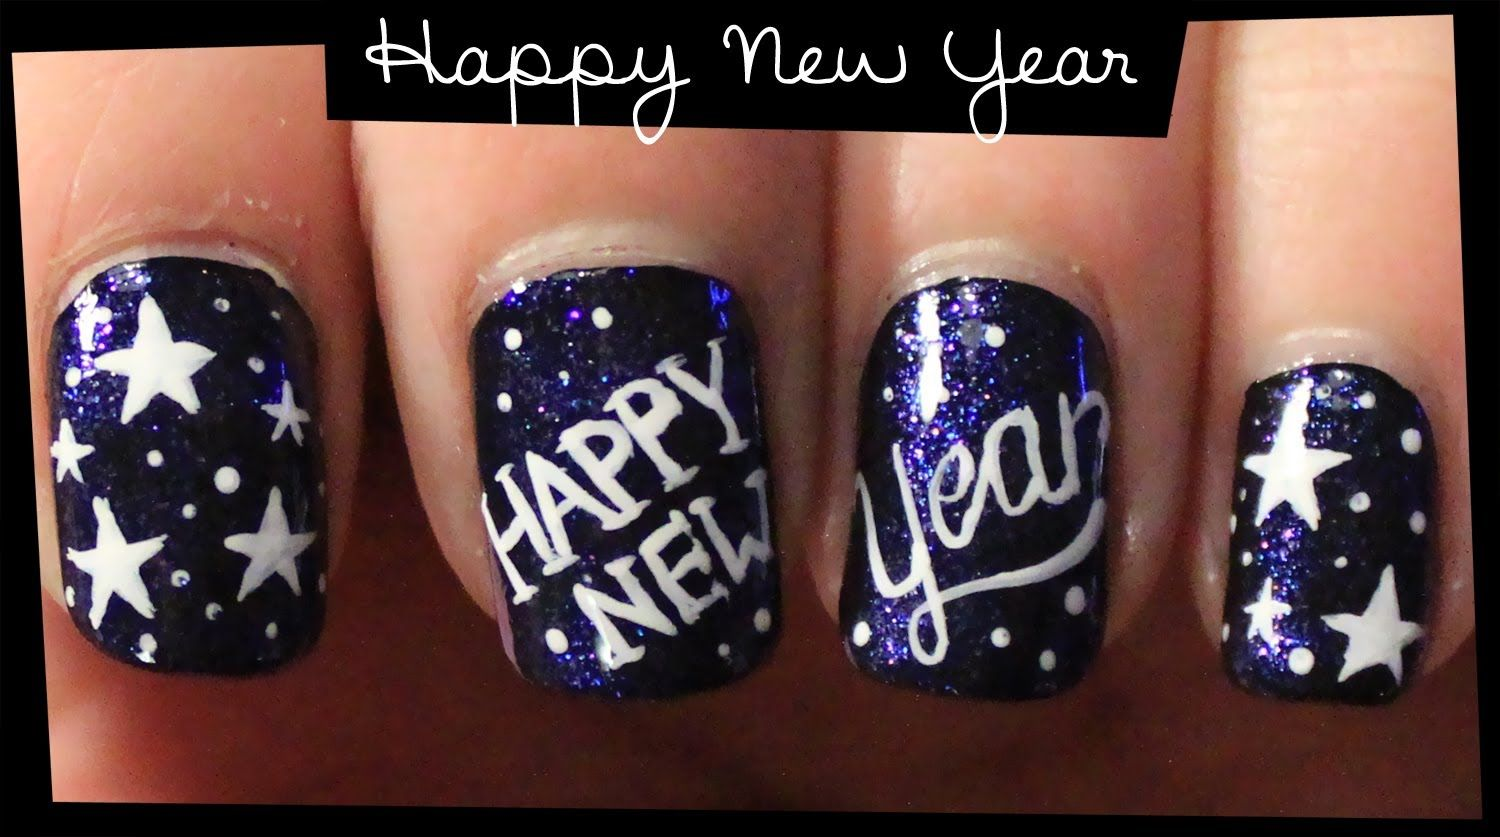 happy new year 2016 nail designs - Google Search | downloaded ...